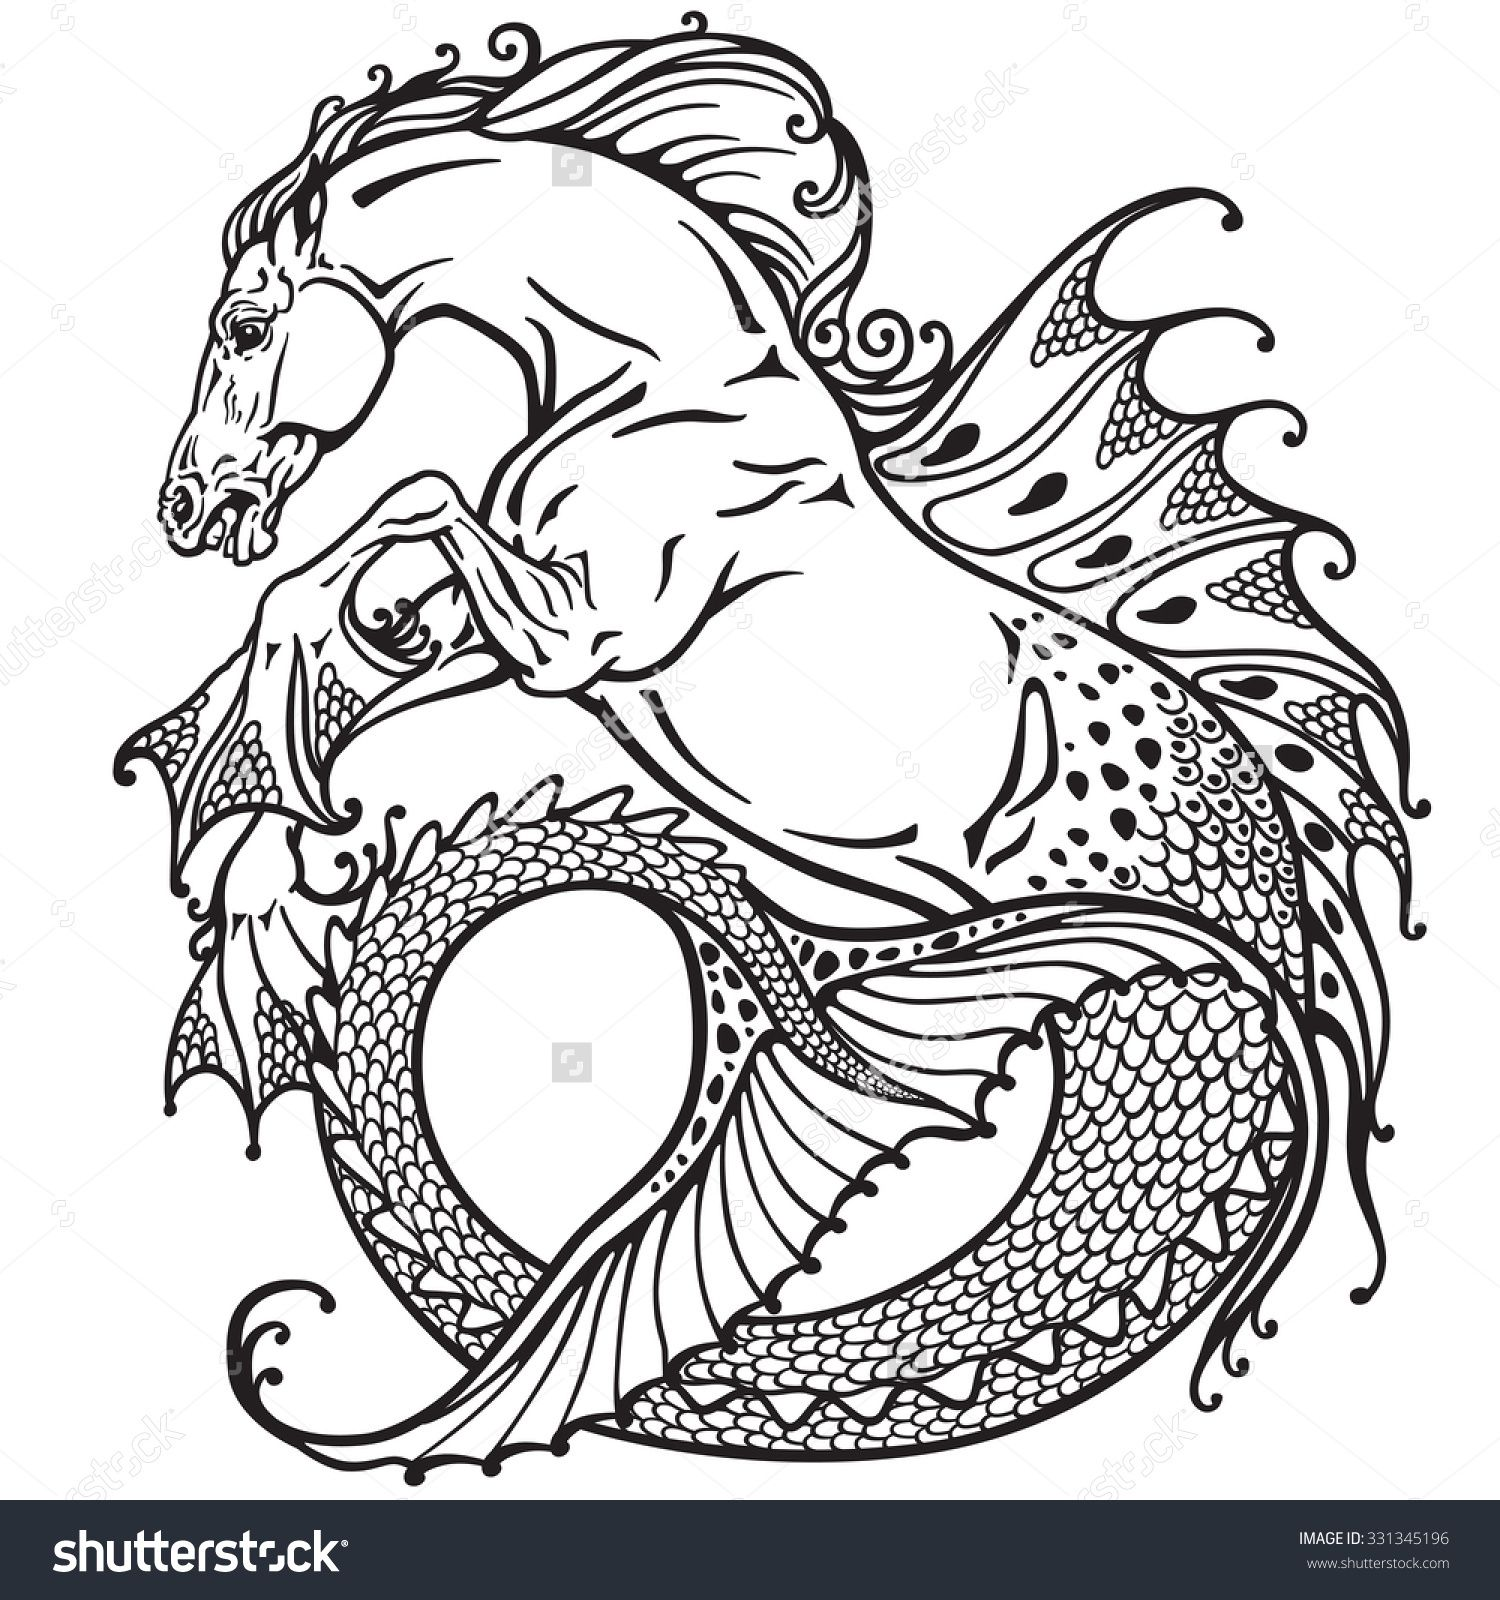 Image Result For Sea Horse Mythical Creature Shest Pinterest